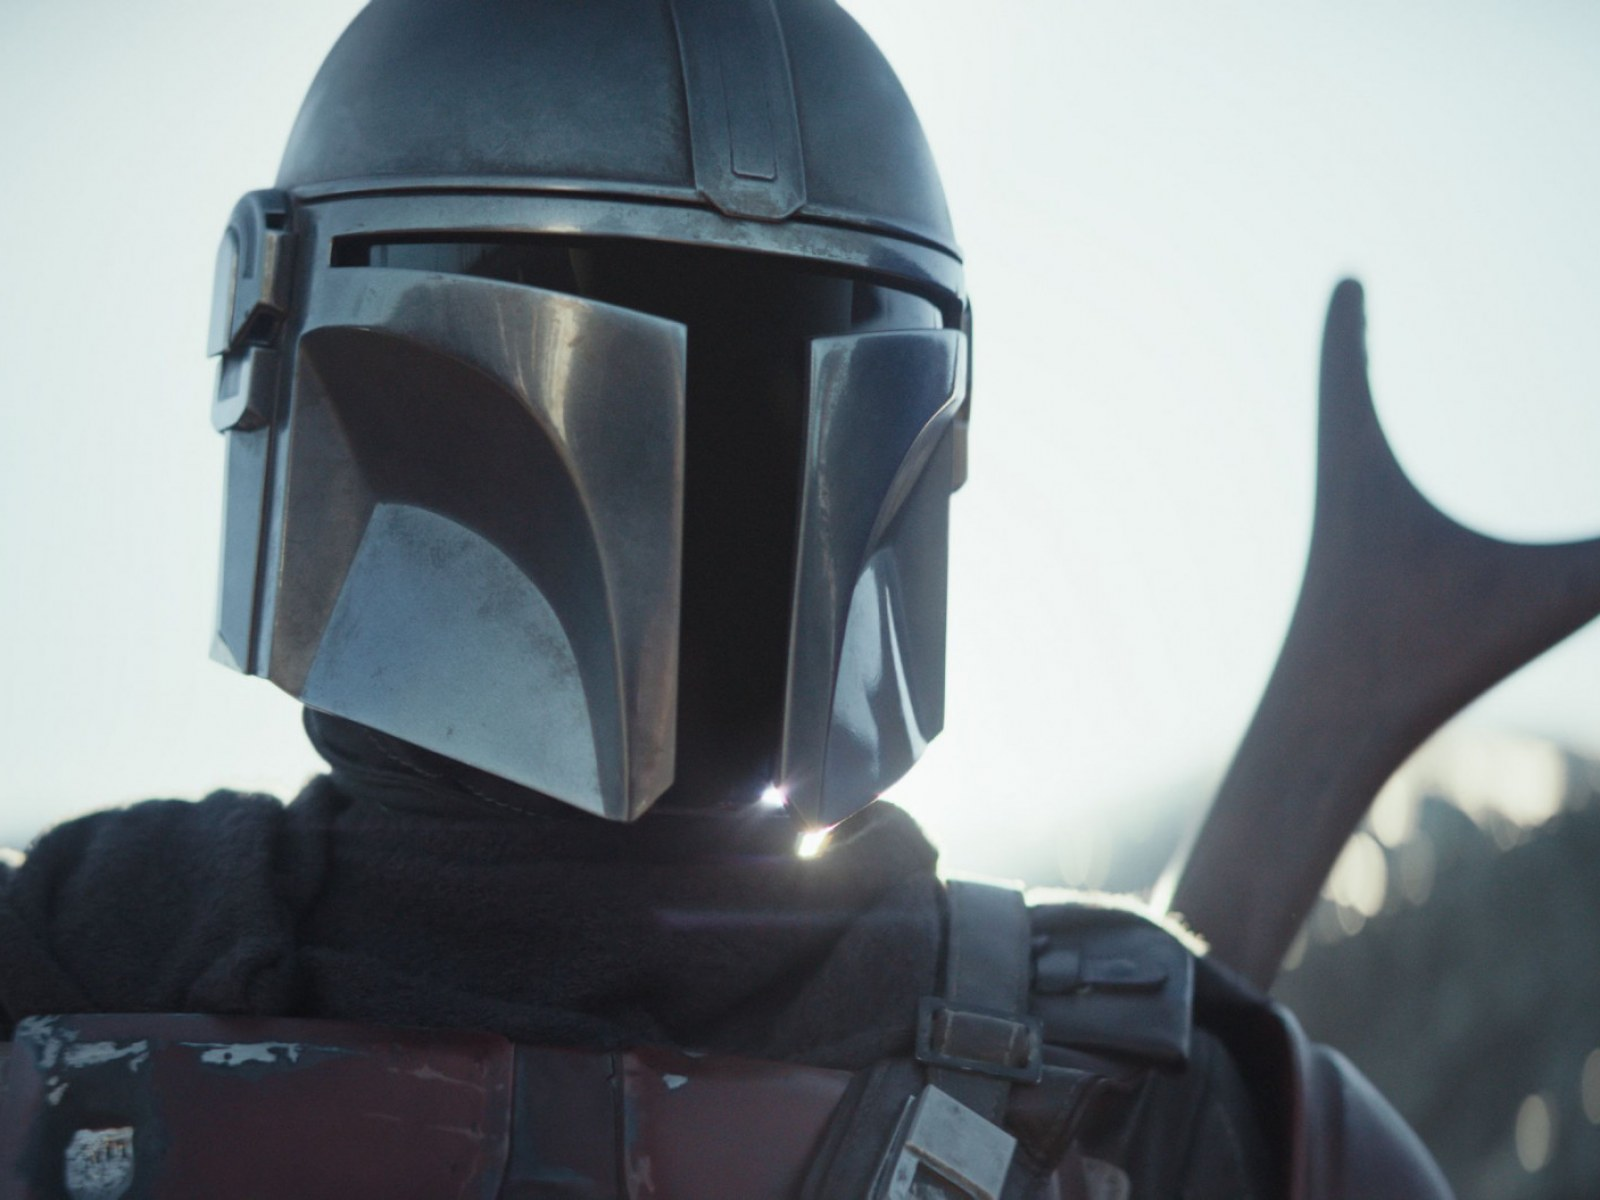 The Mandalorian Episode Release Dates When Will New Episodes Air On Disney Plus